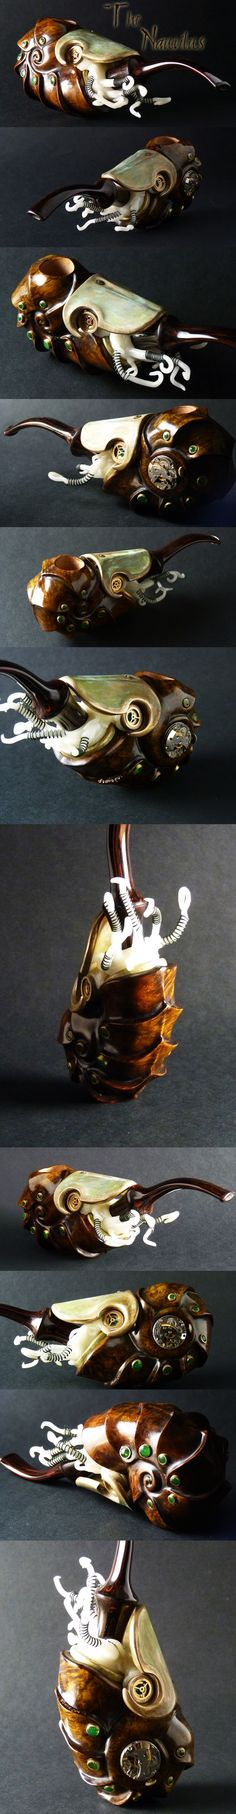 The Nautilus, by Stephen Downie.  AWESOME.